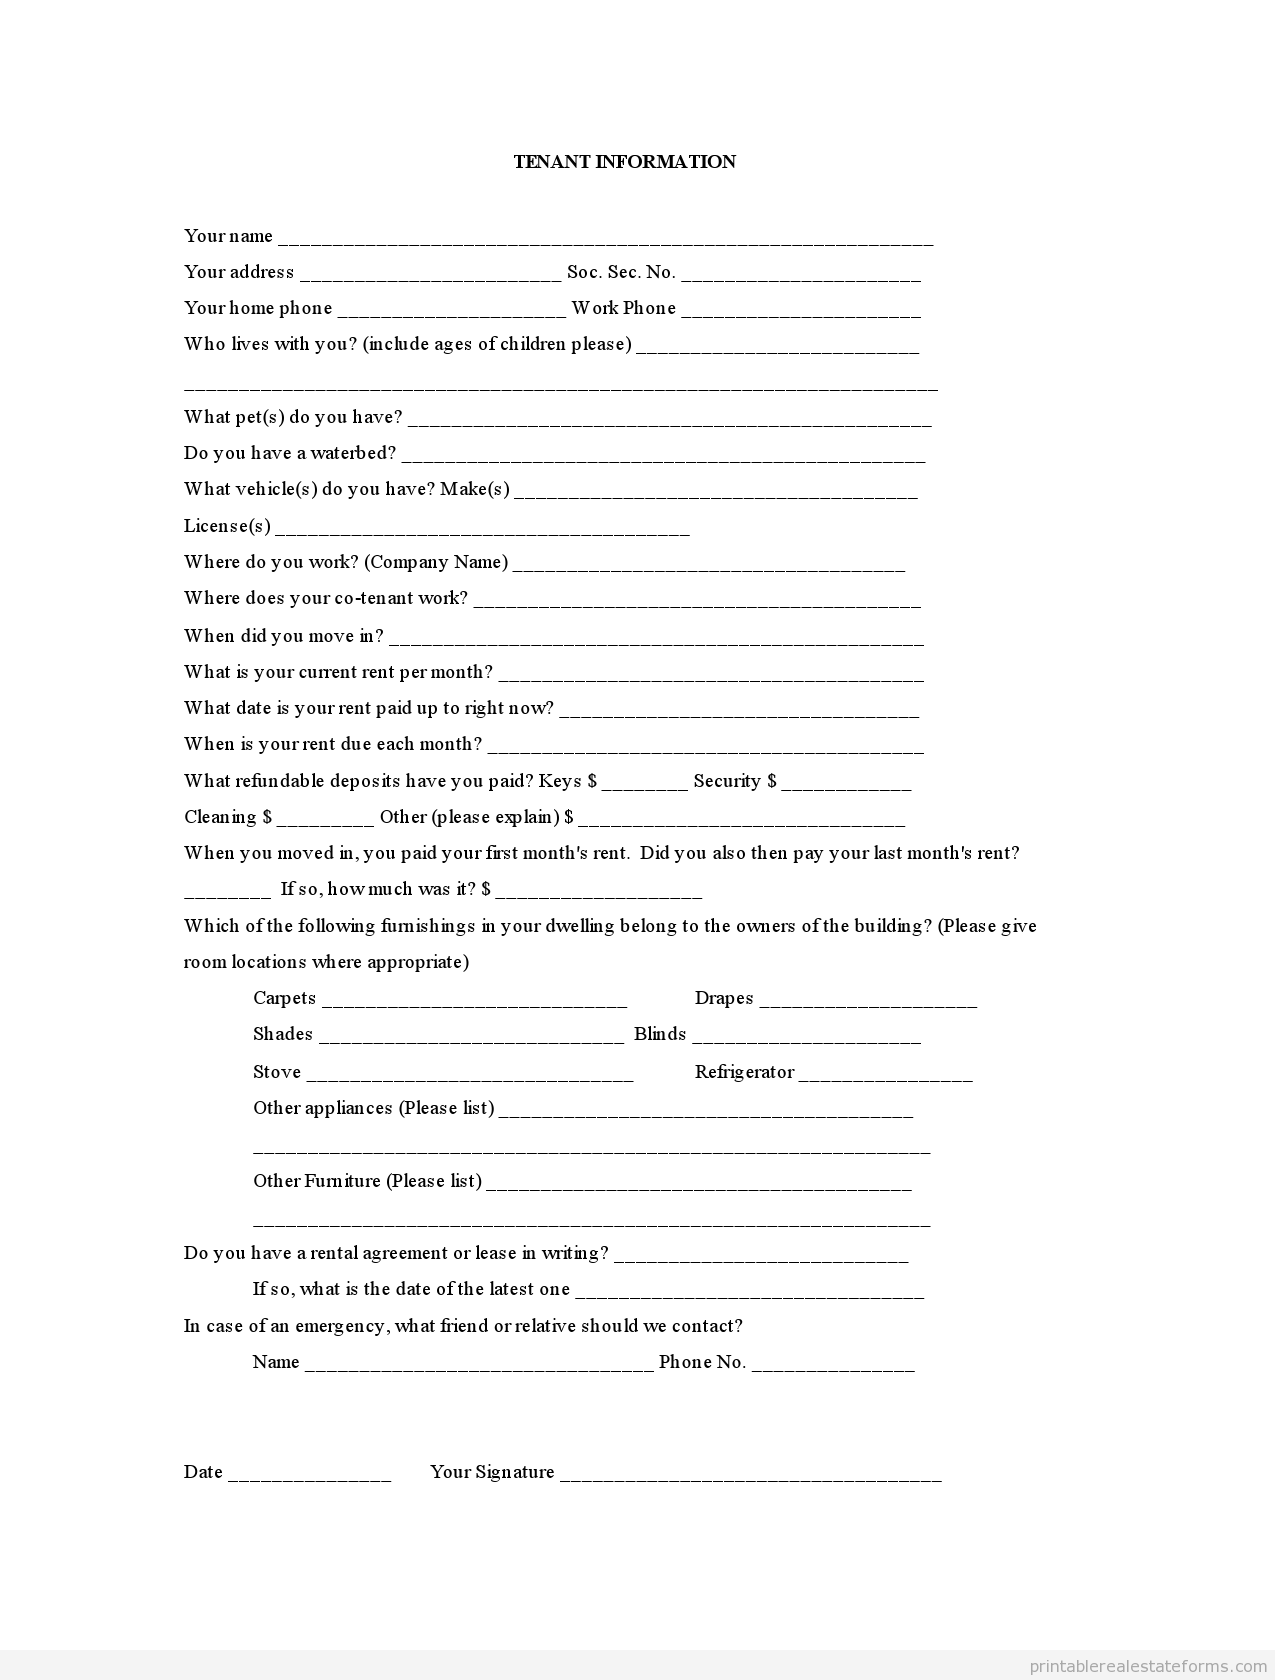 Printable Tenant Information Template 2015 Sample Forms